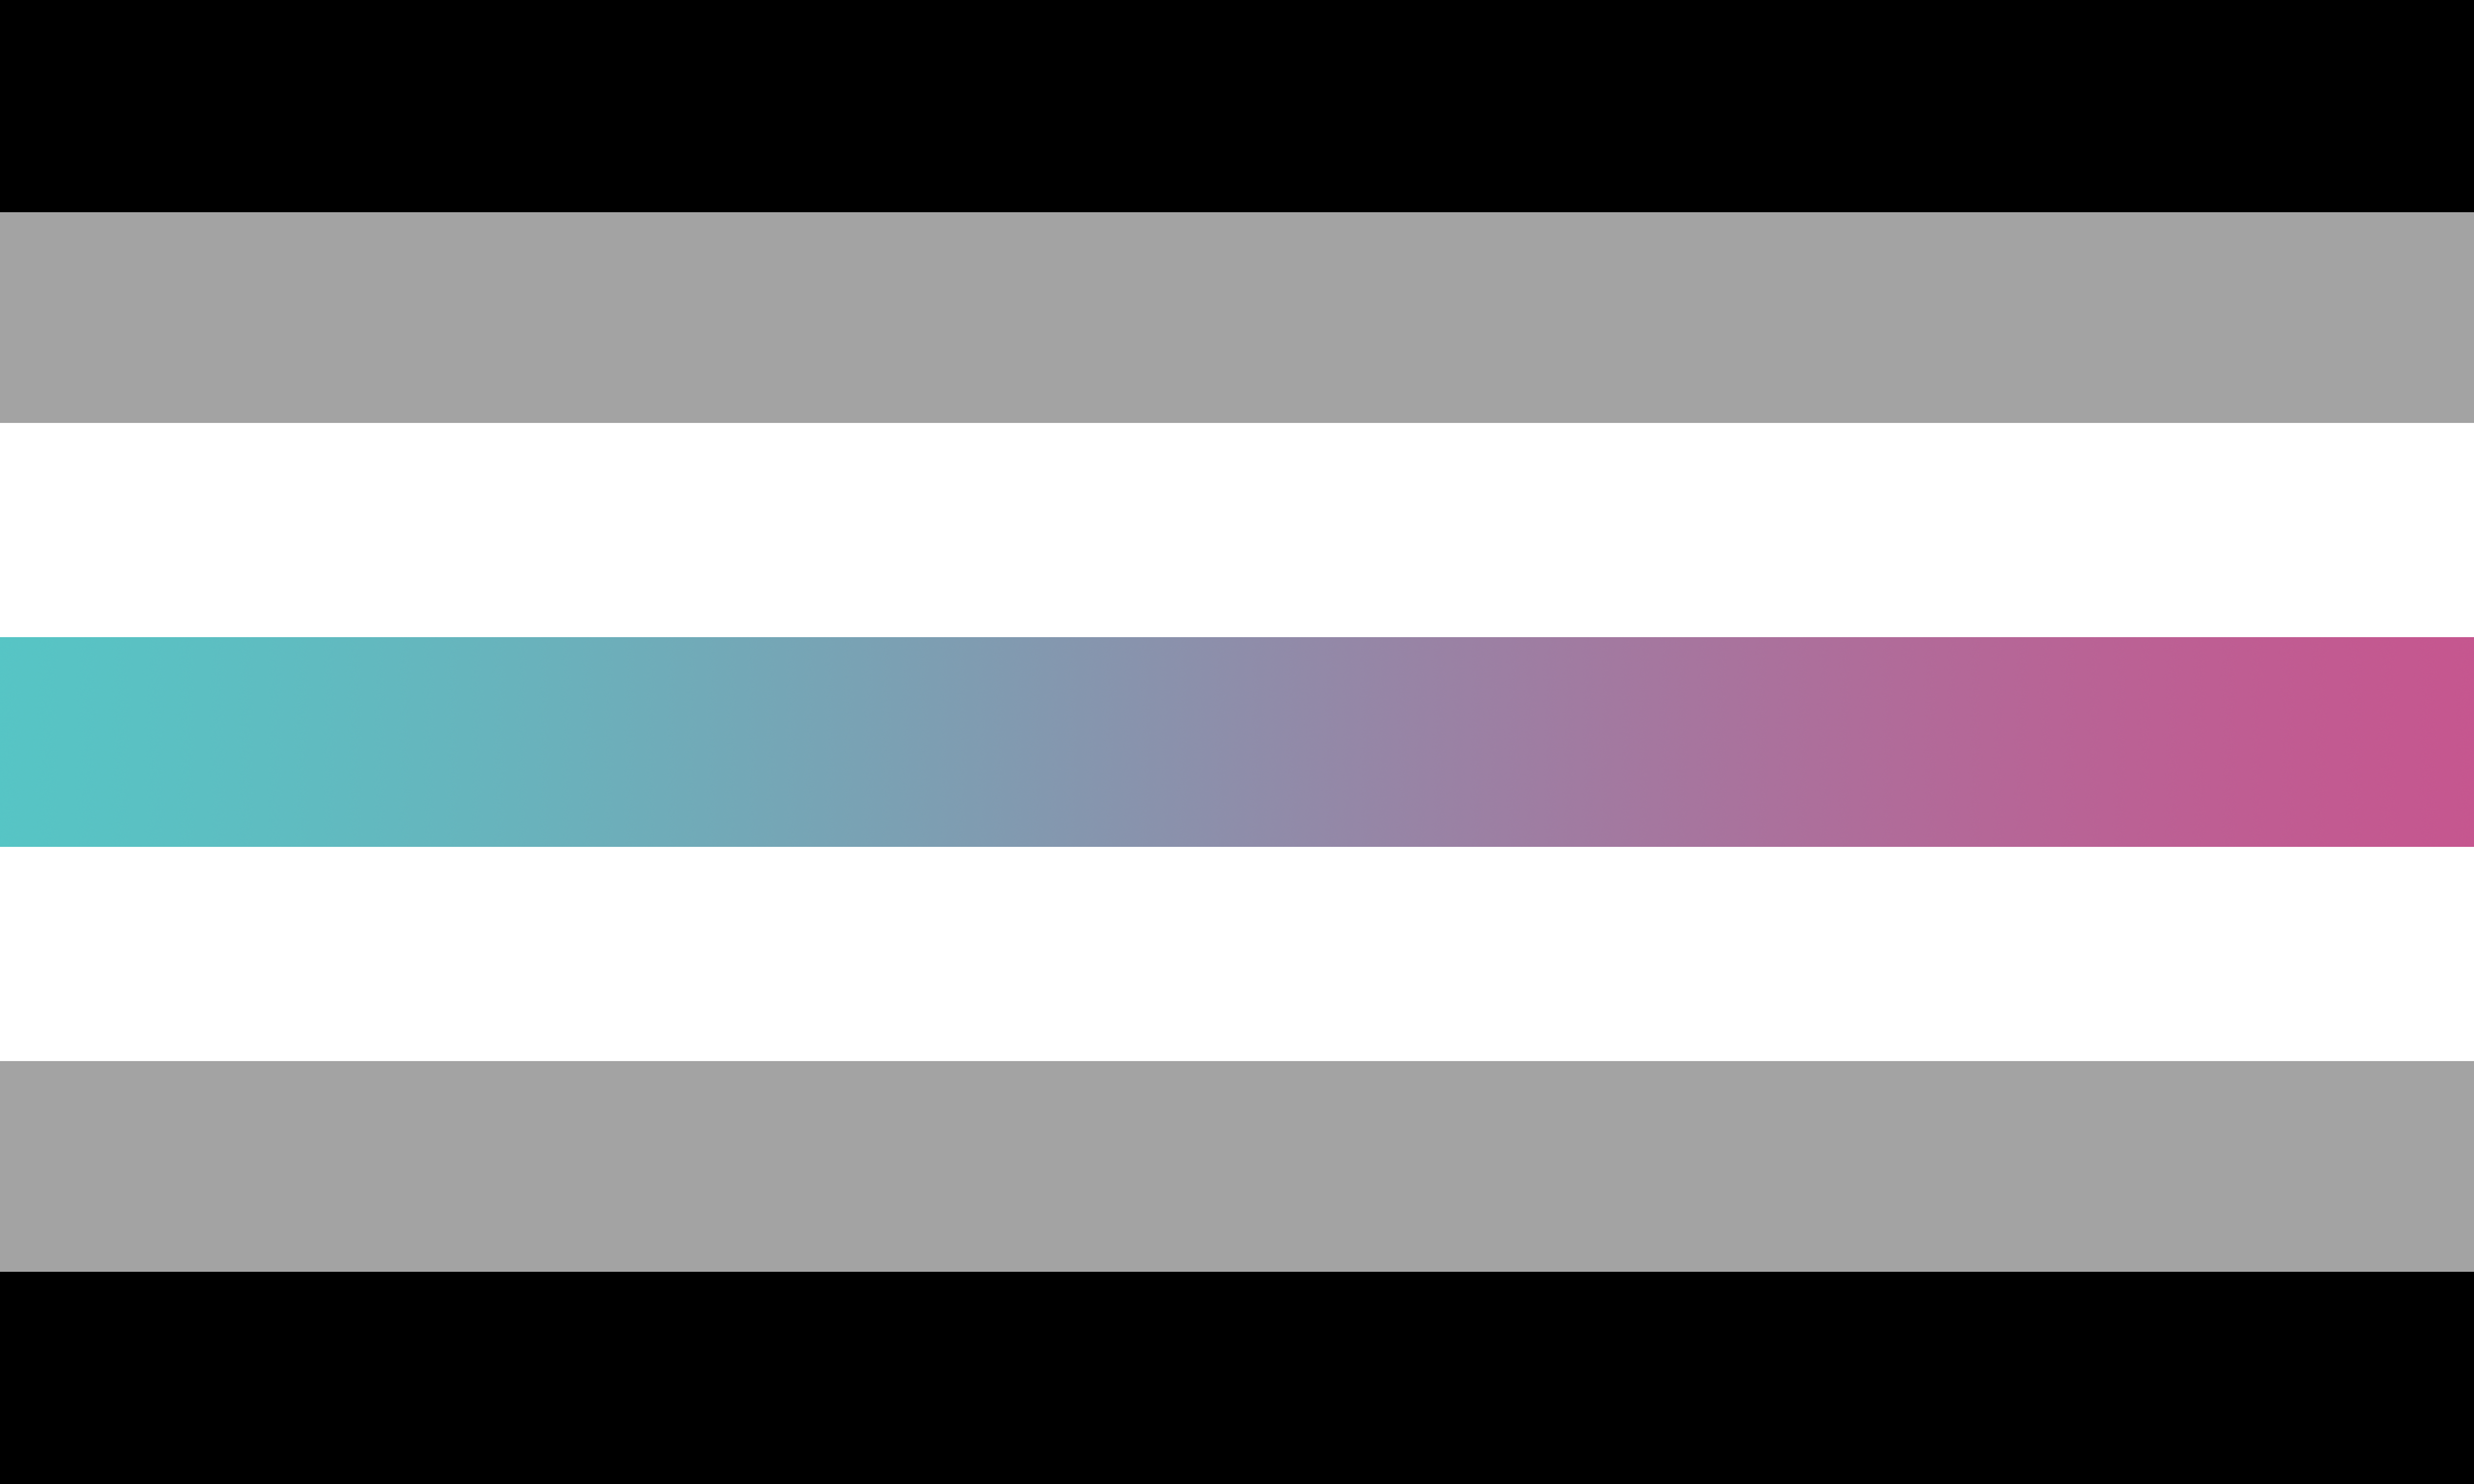 Androsexual pride flag